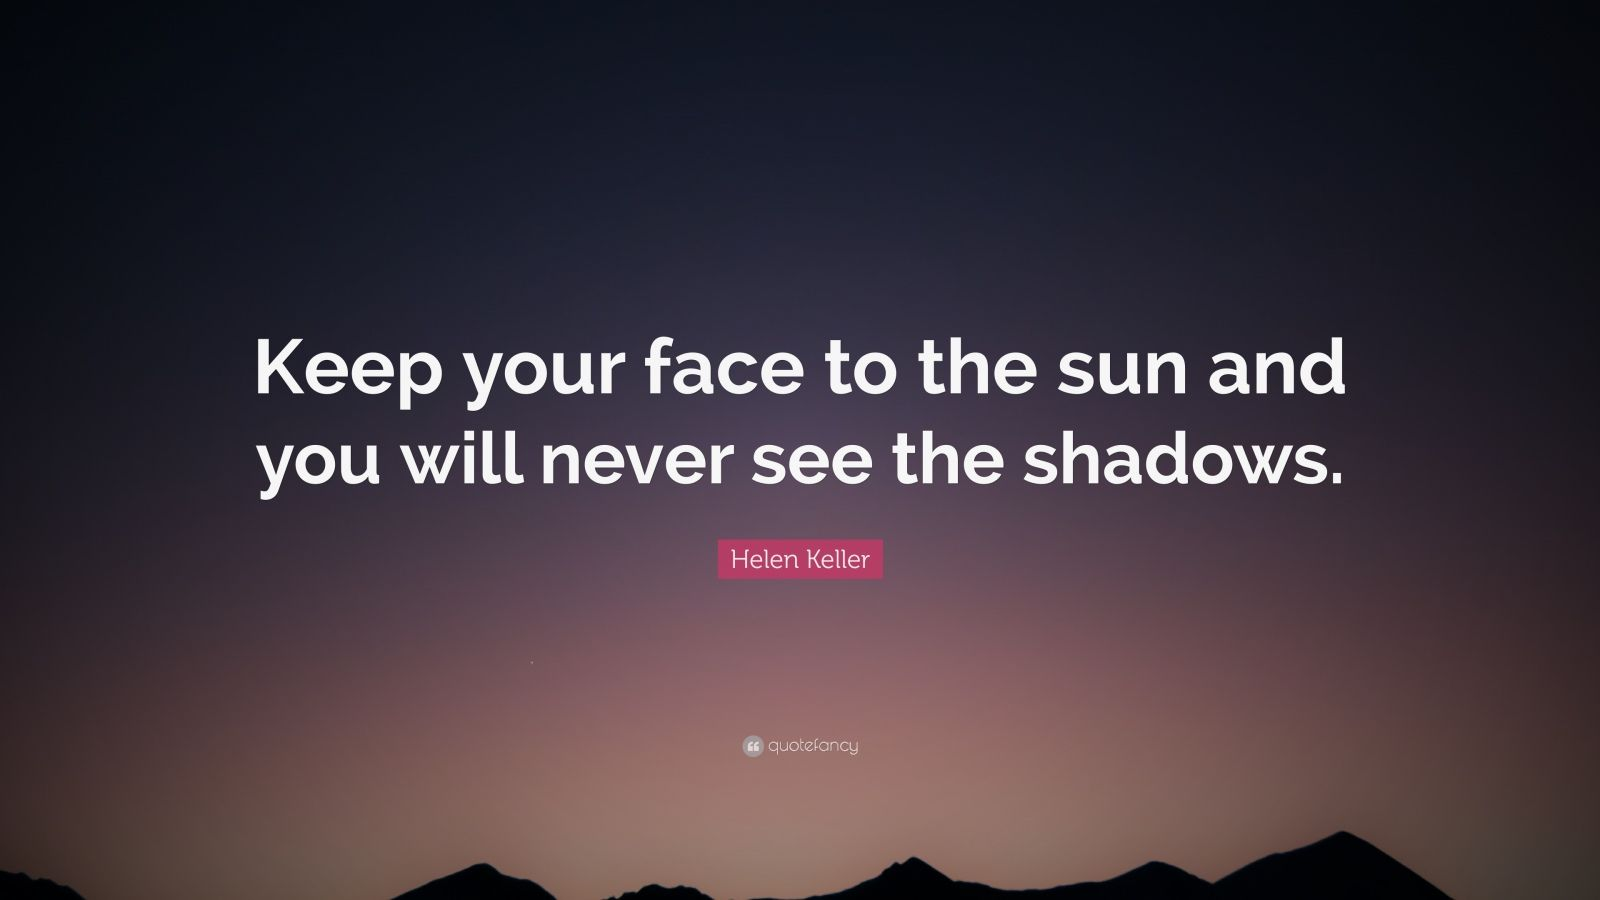 Dalai Lama Quotes Wallpapers Helen Keller Quote Keep Your Face To The Sun And You